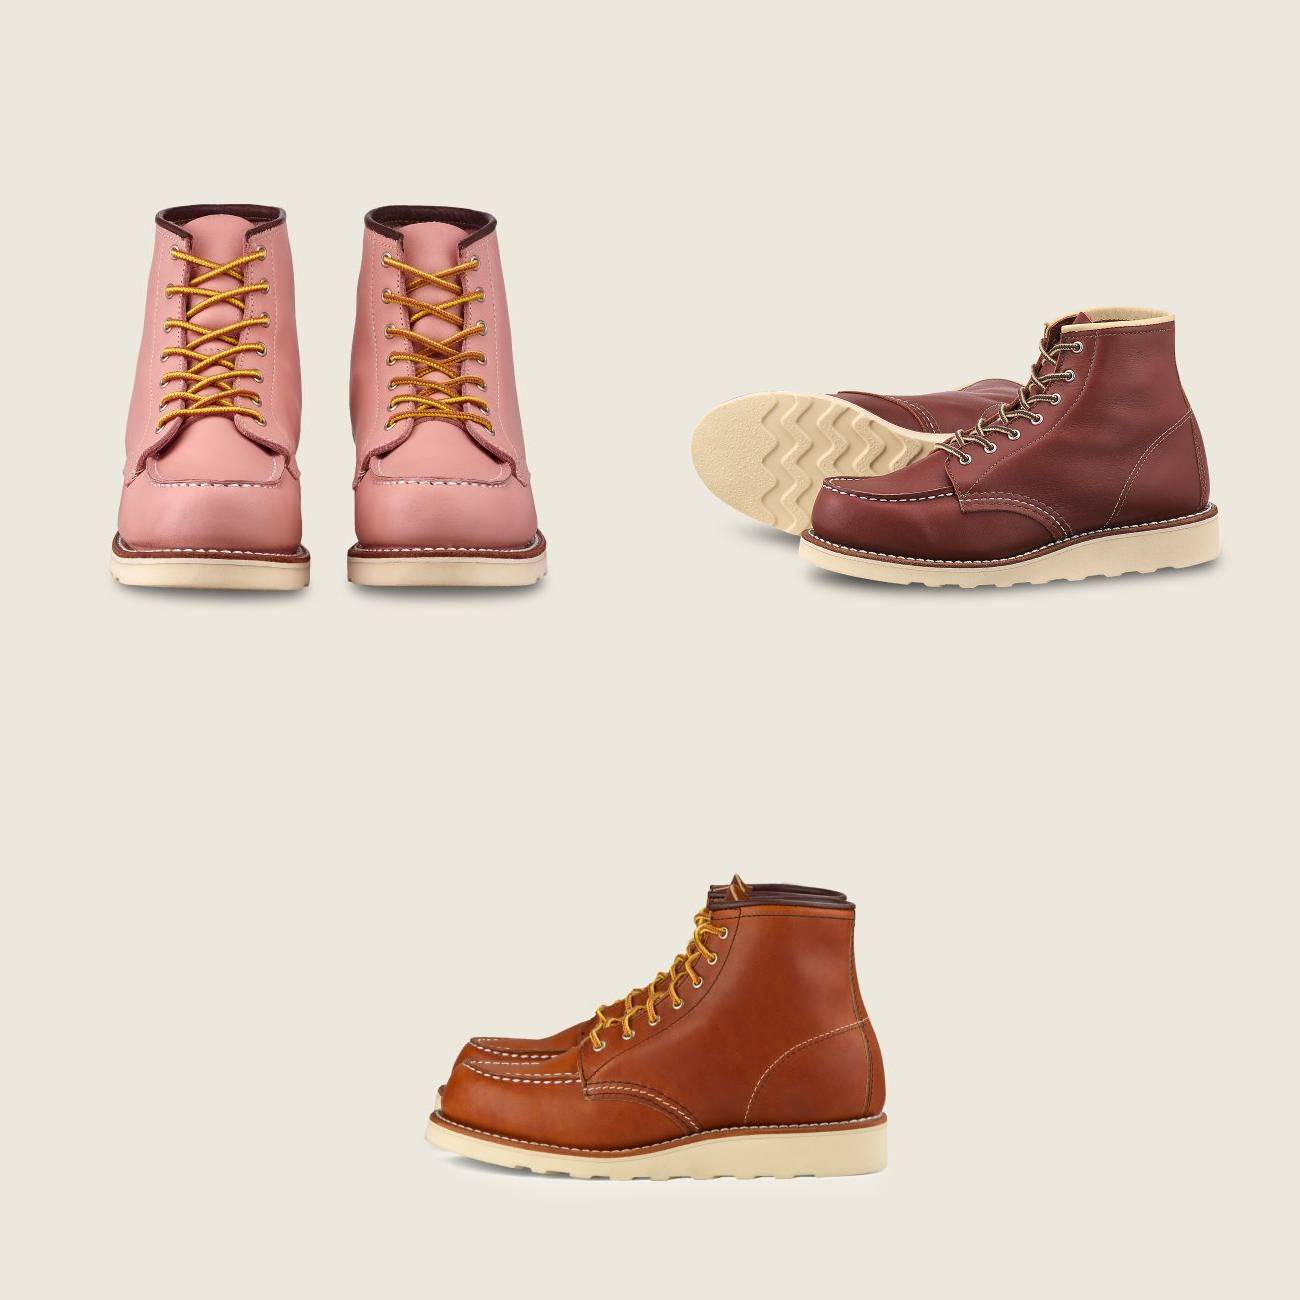 Les chaussures Red Wing Shoes